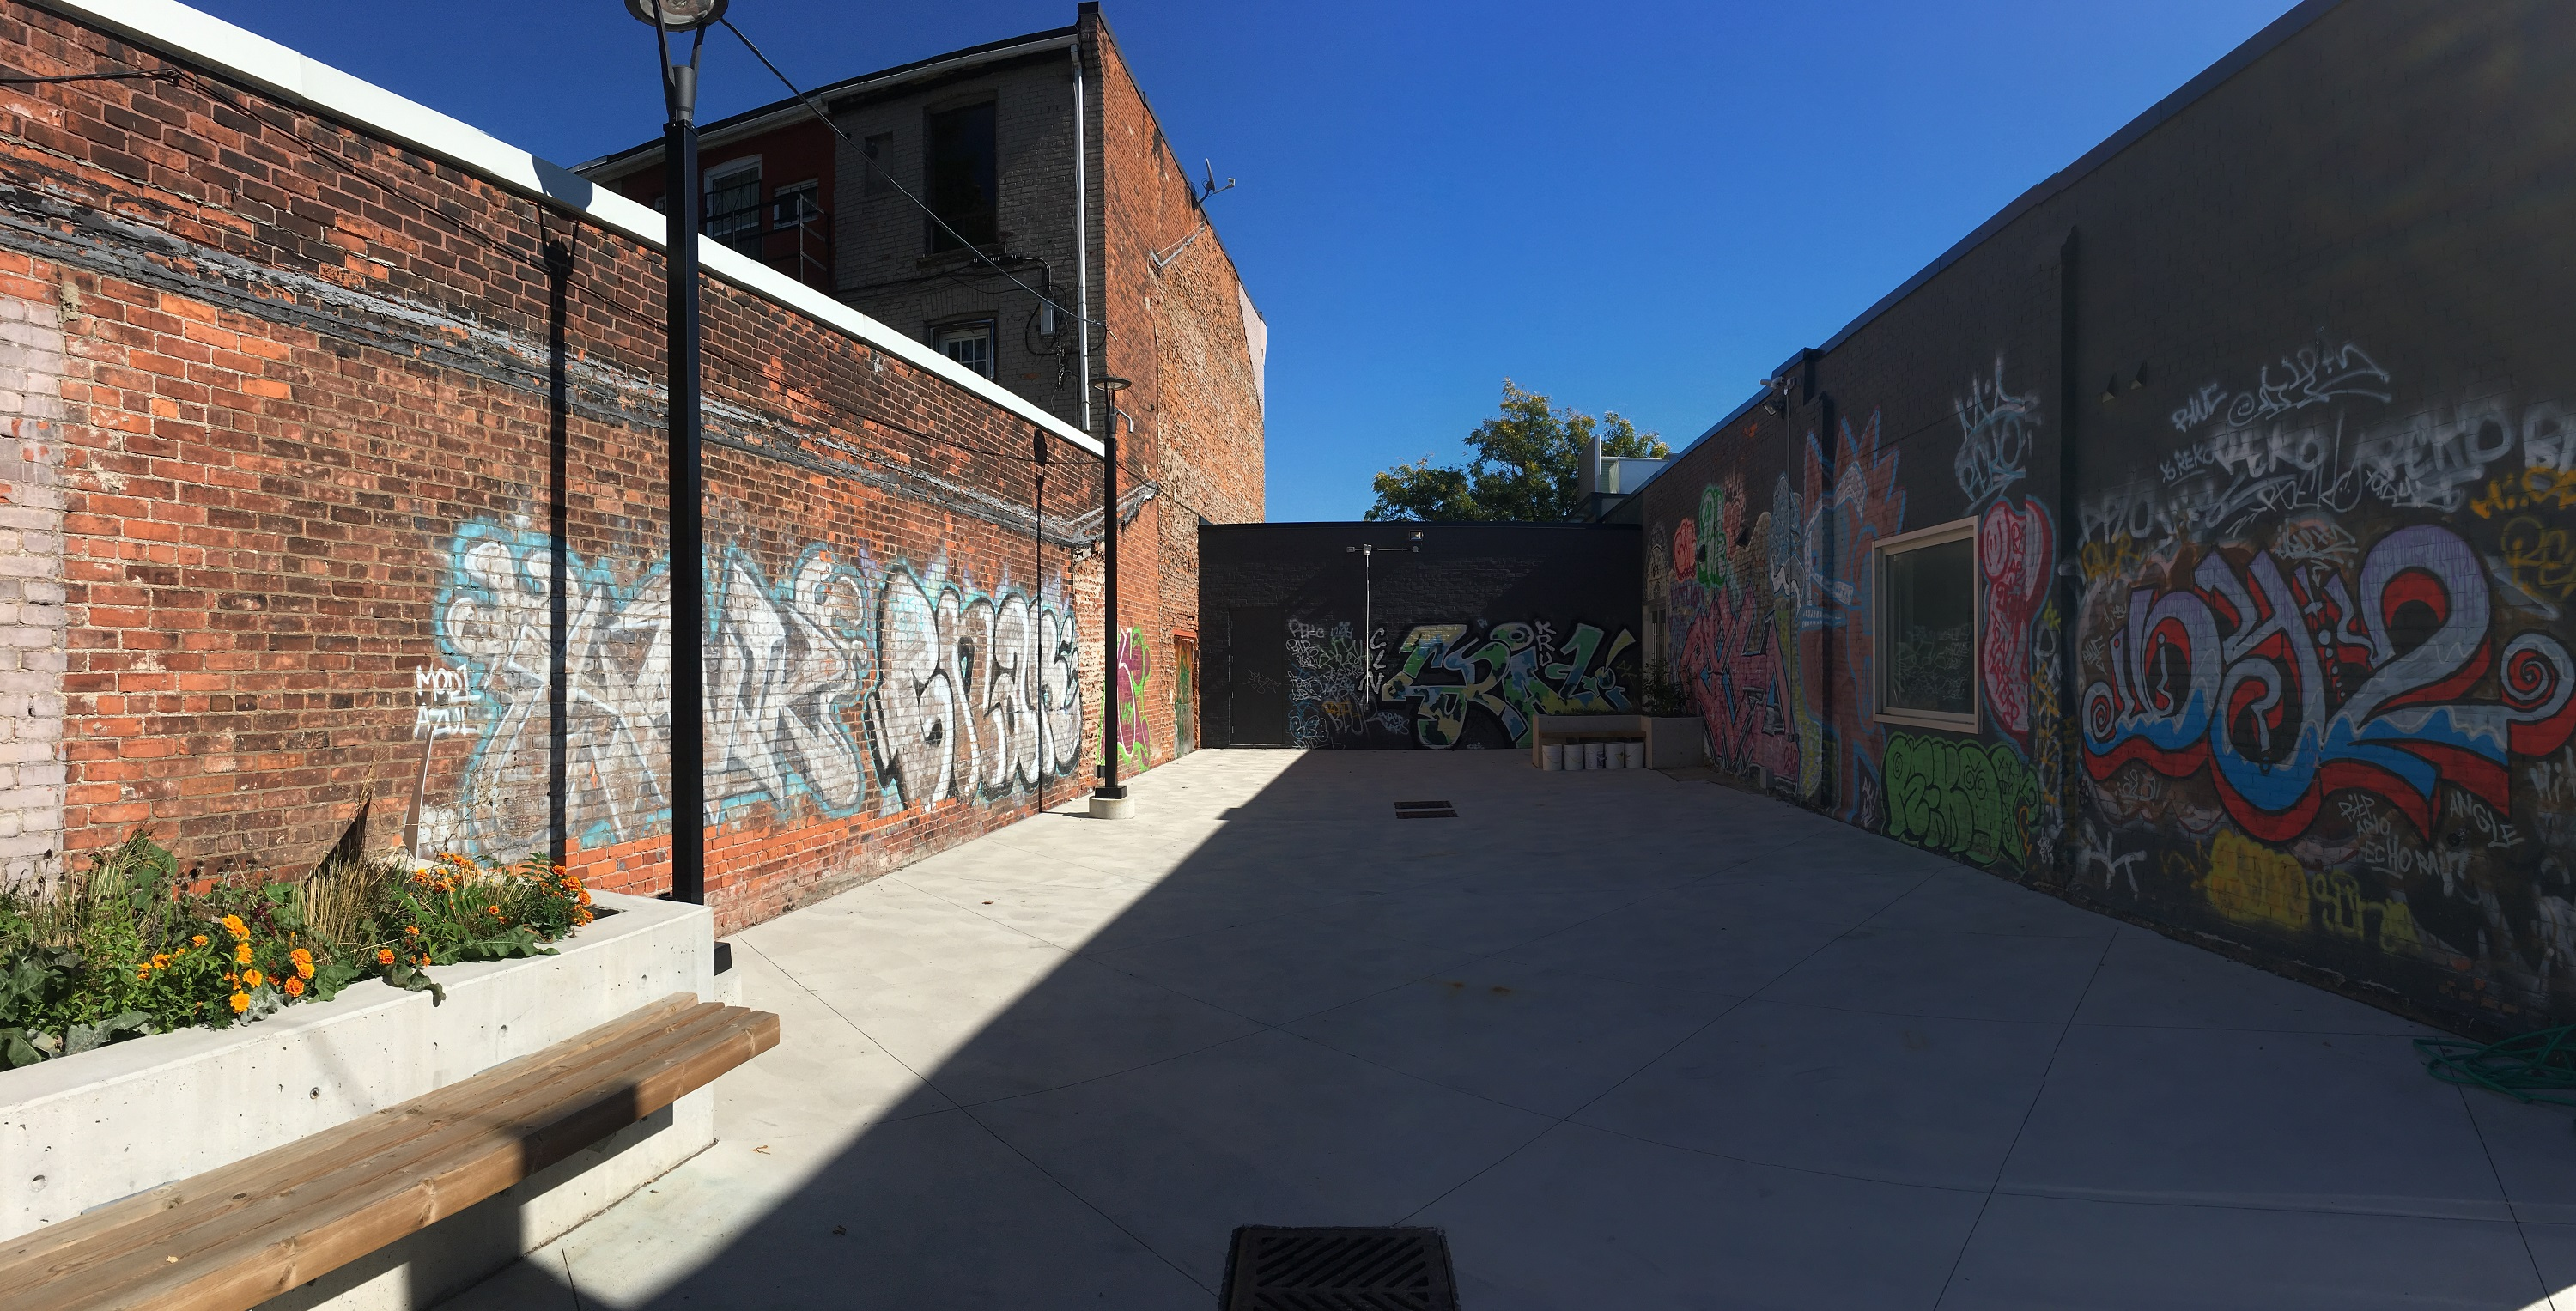 The Inc.'s courtyard, which is enclosed by red brick walls with layers of colourful graffiti on them. To the left, there are concrete flower boxes with wooden benches attached, and to the right is the office window. In the sky above, there is not a single cloud.